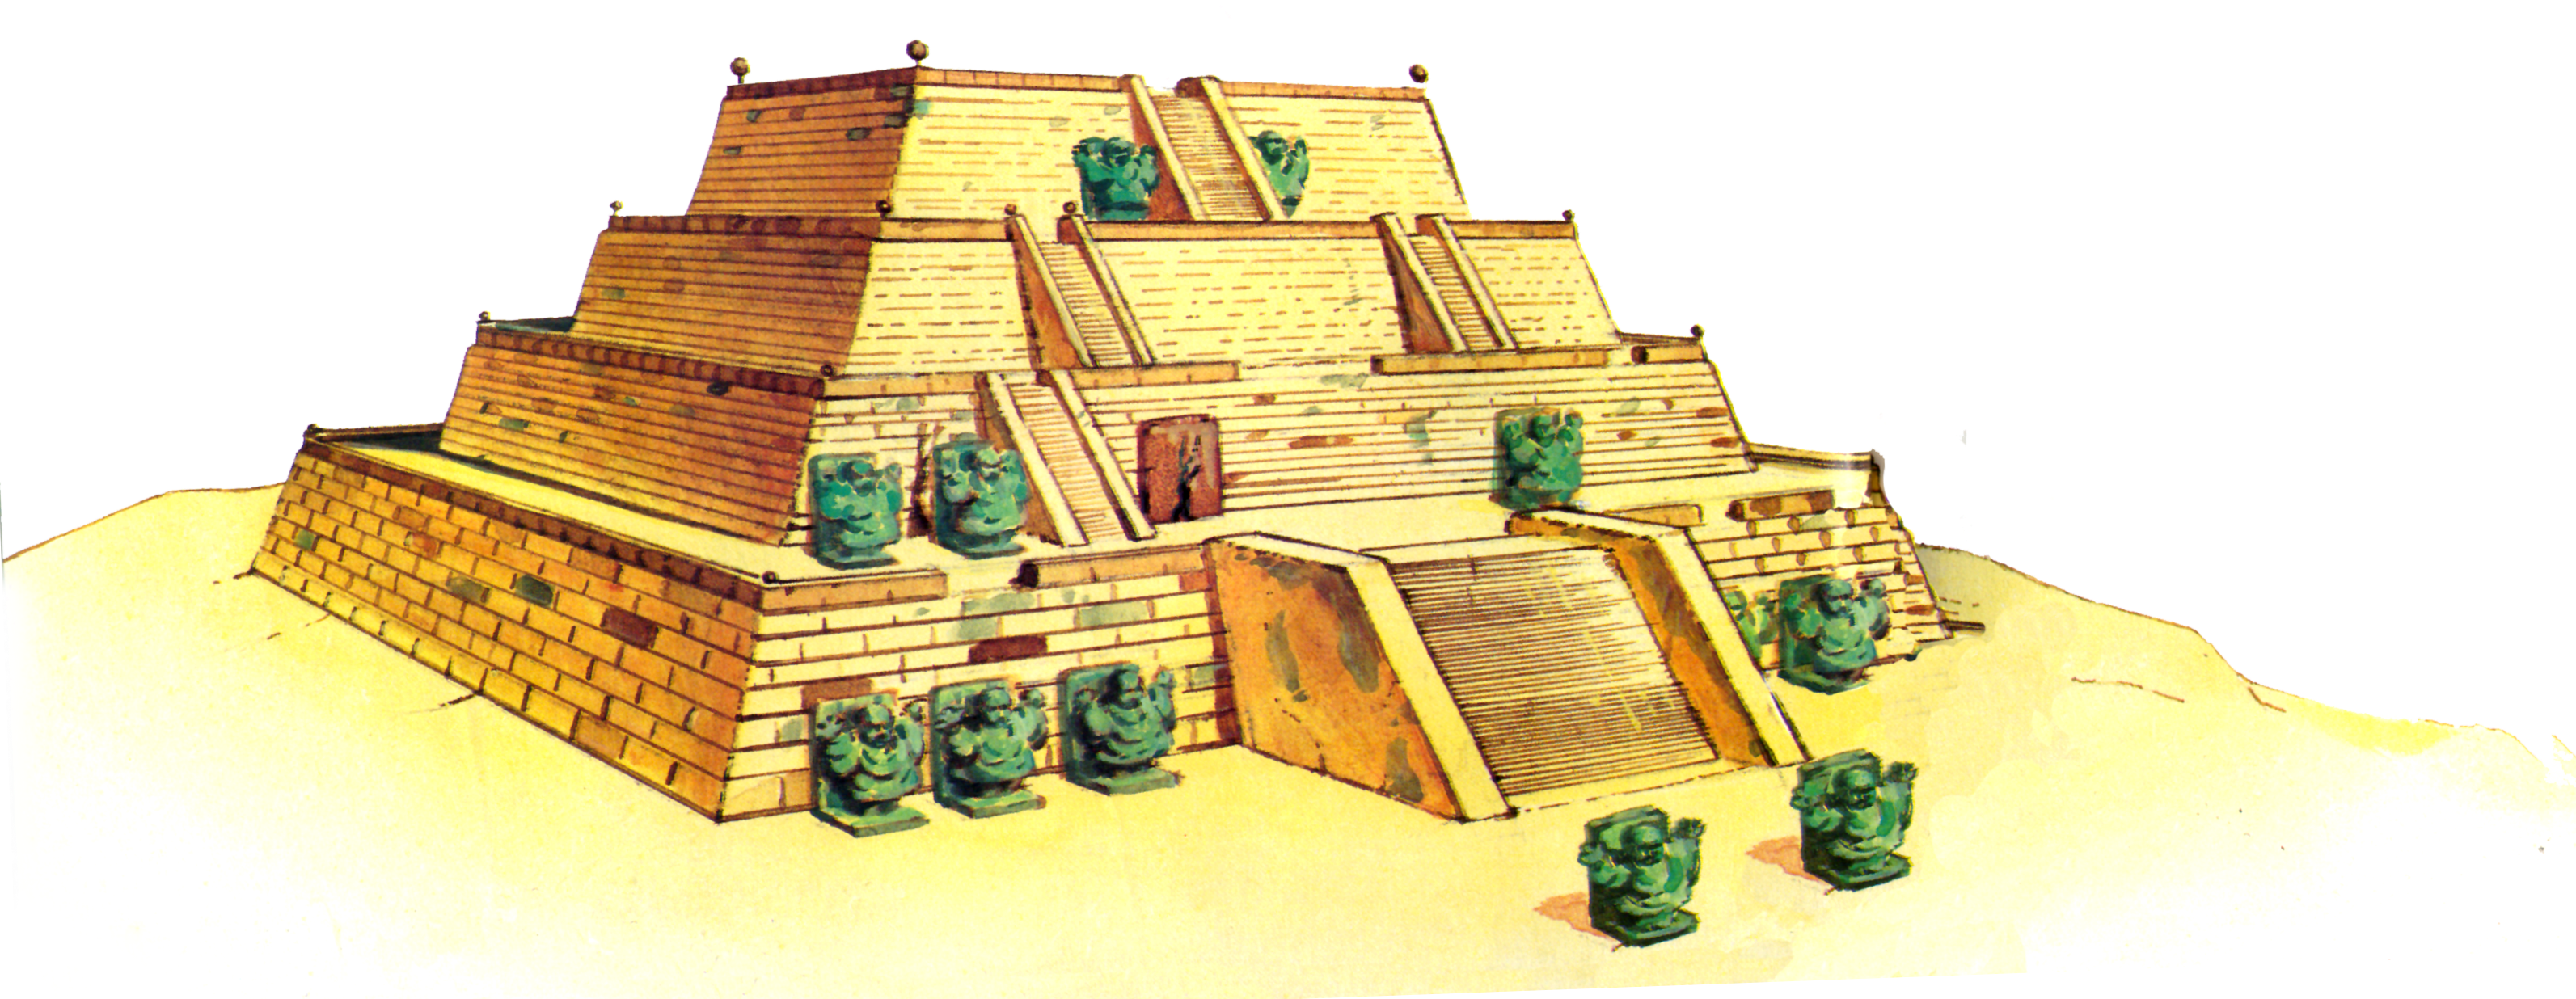 Pyramide (A Link to the Past)